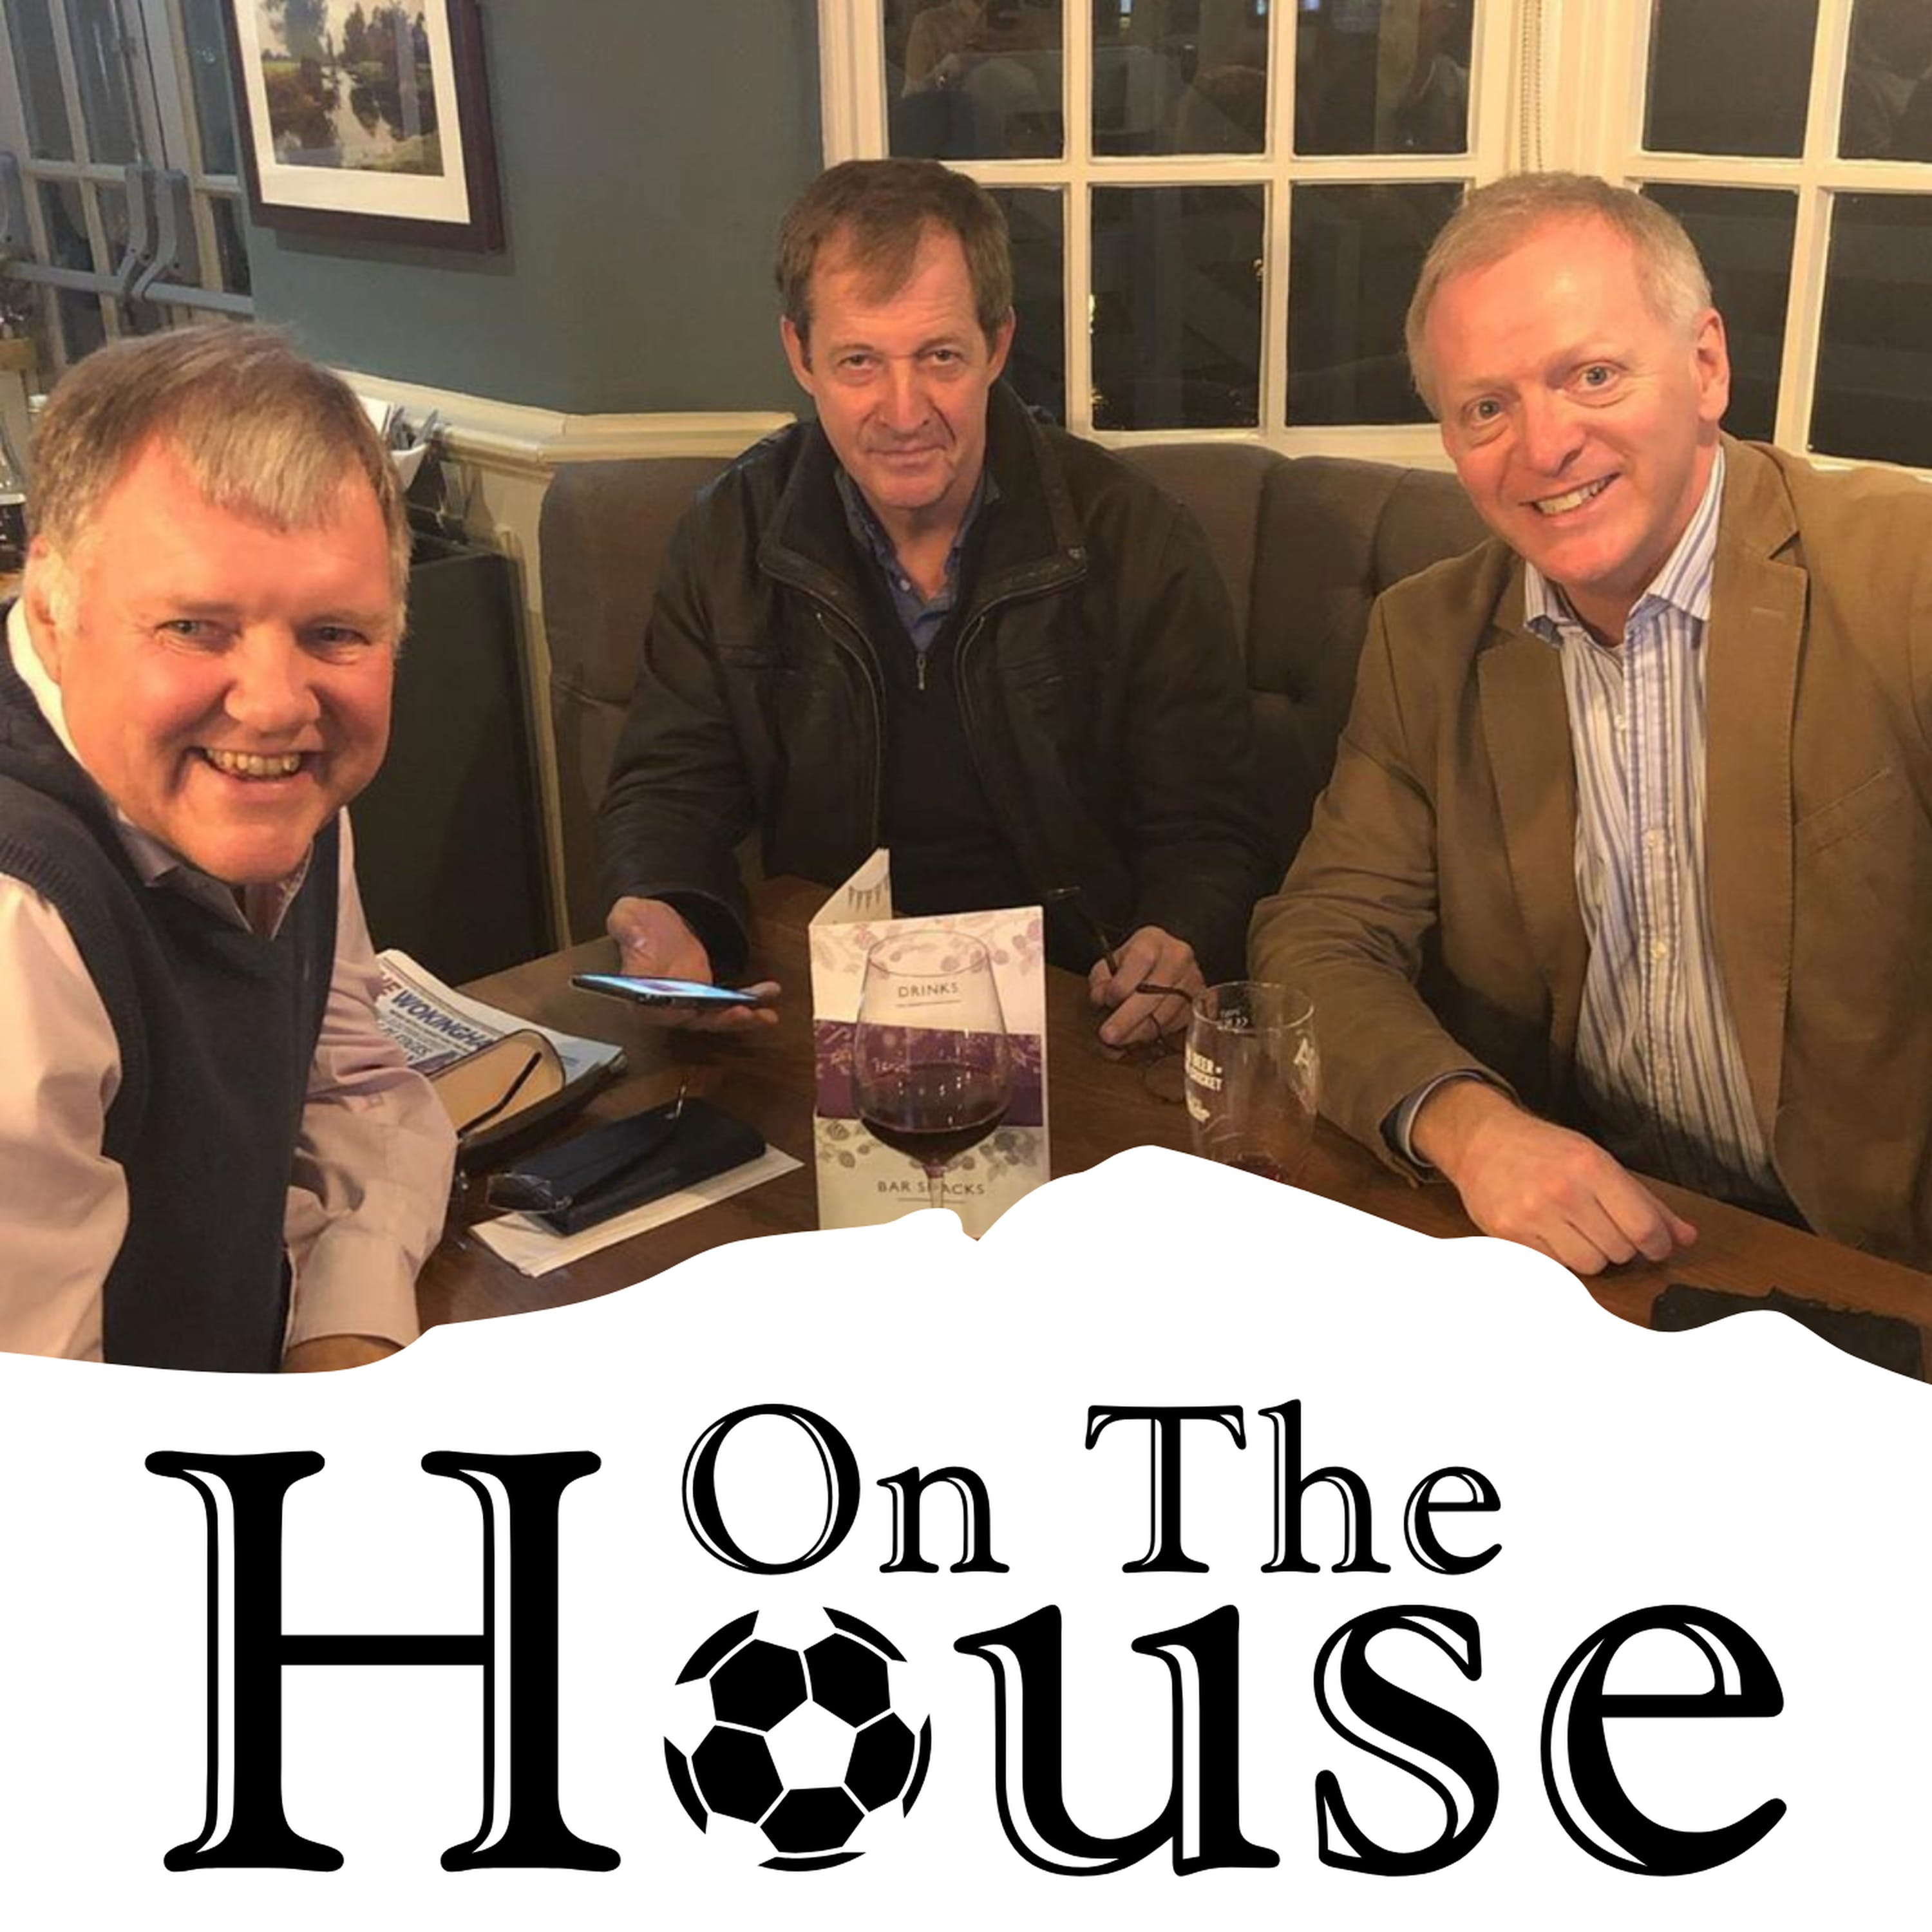 ON THE HOUSE: ON THE ROAD with ALASTAIR CAMPBELL and guest host CLIVE TYLDESLEY